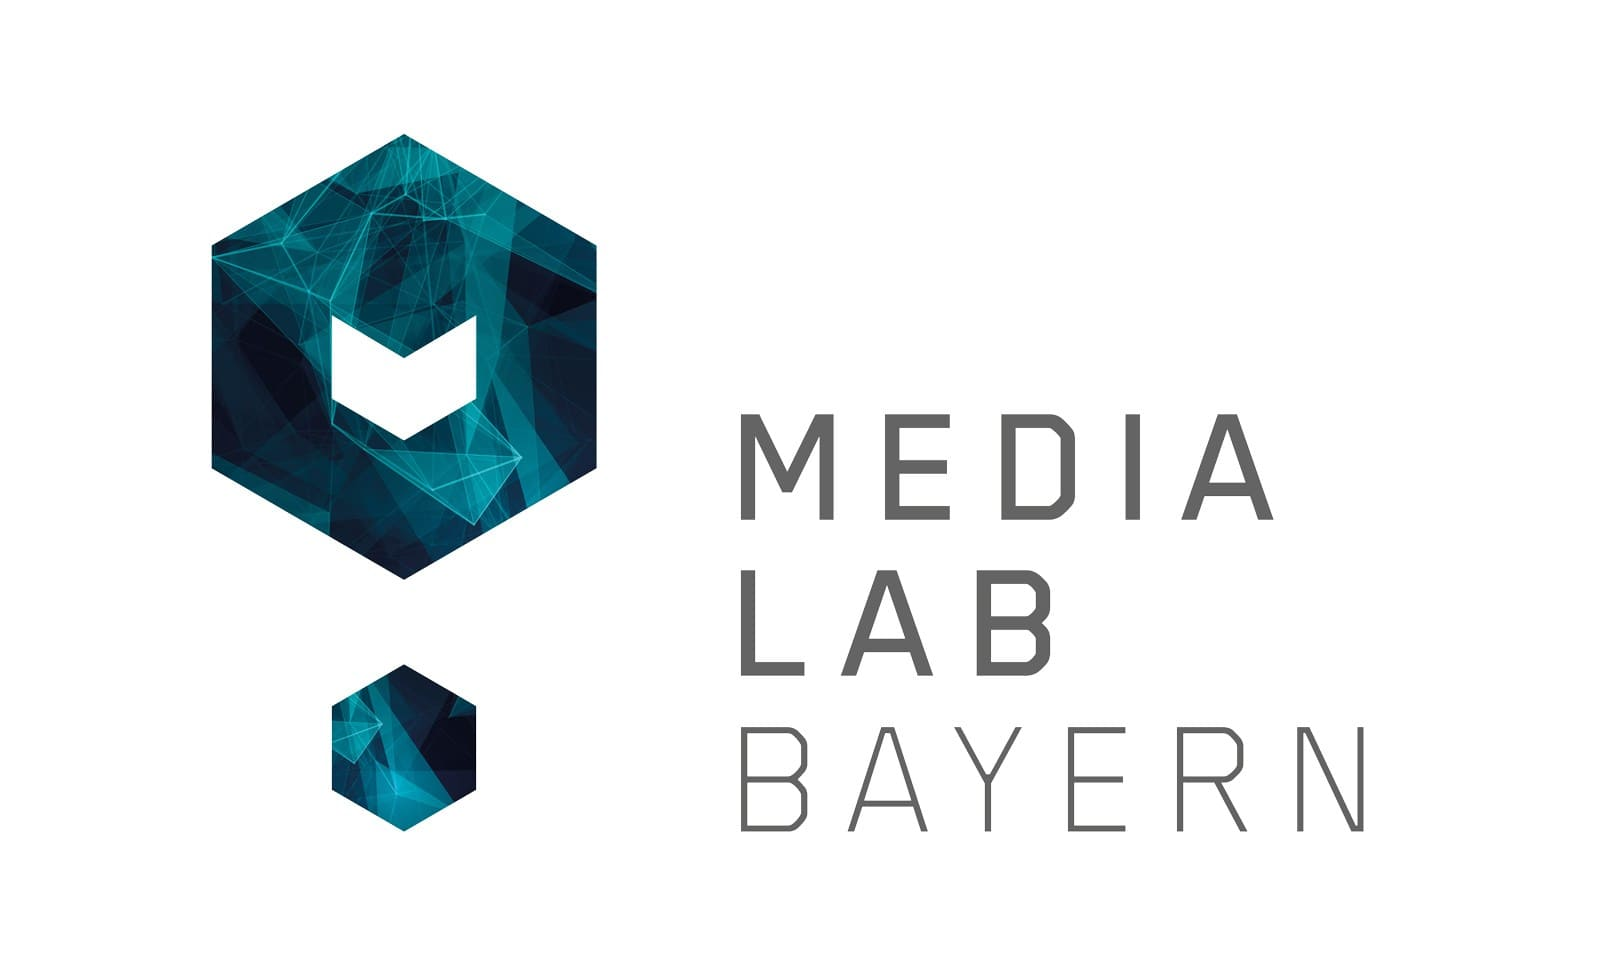 media lab bayern referenz growth hacking workshop-min.jpg